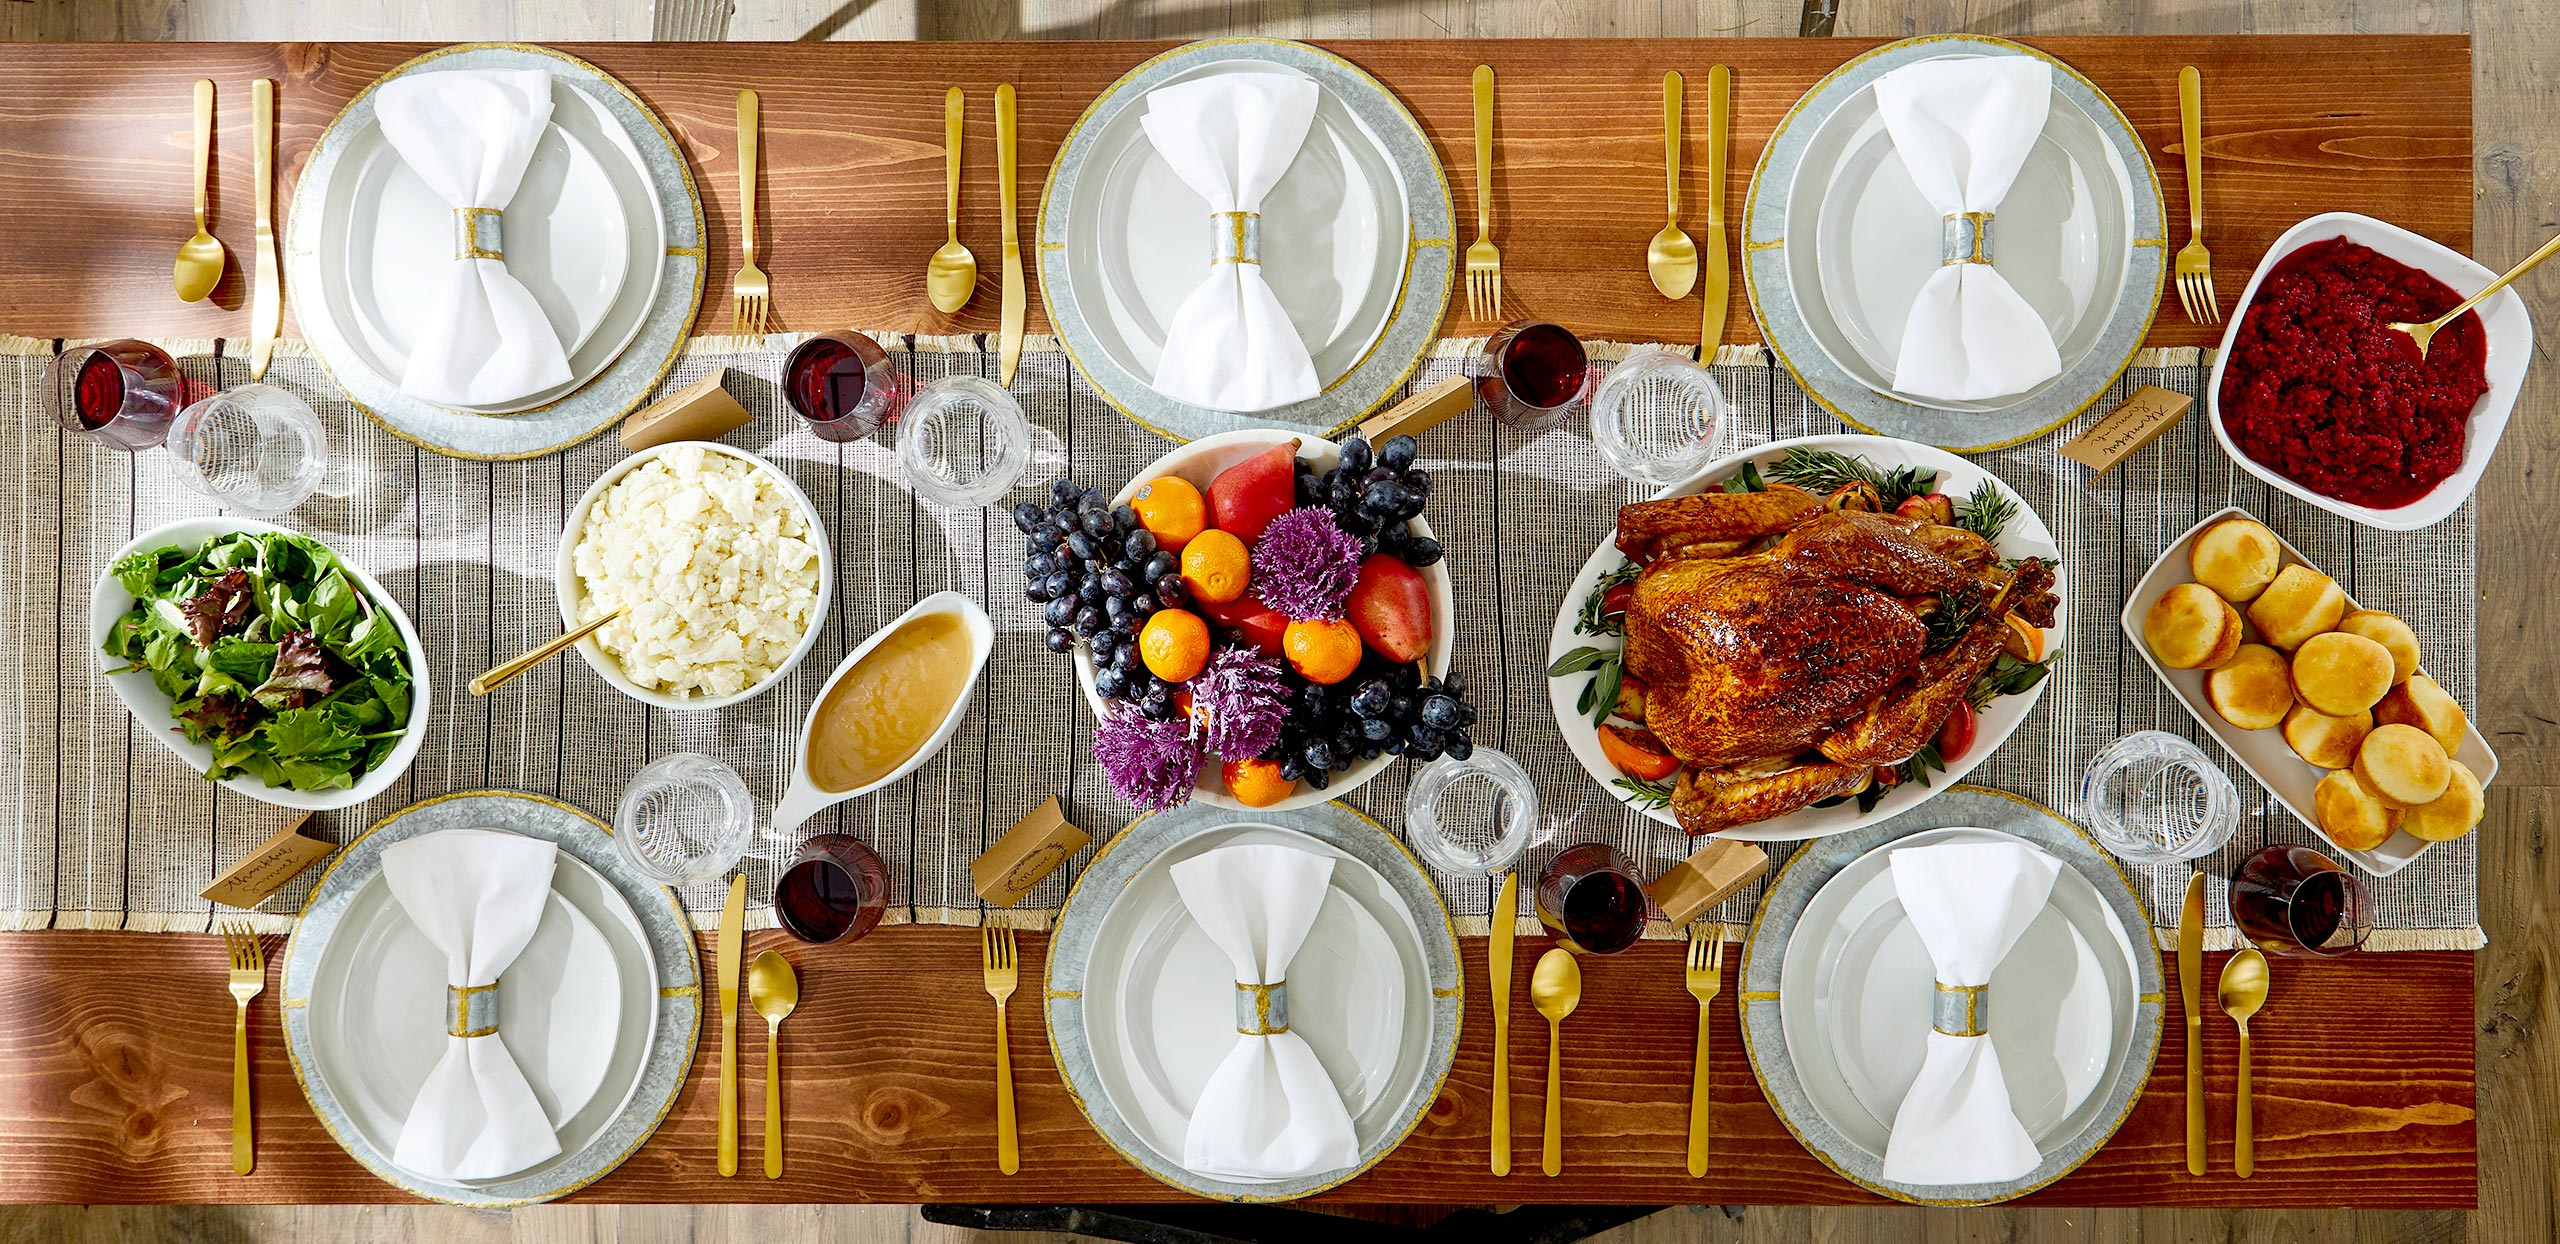 Aerial view of Thanksgiving table setting